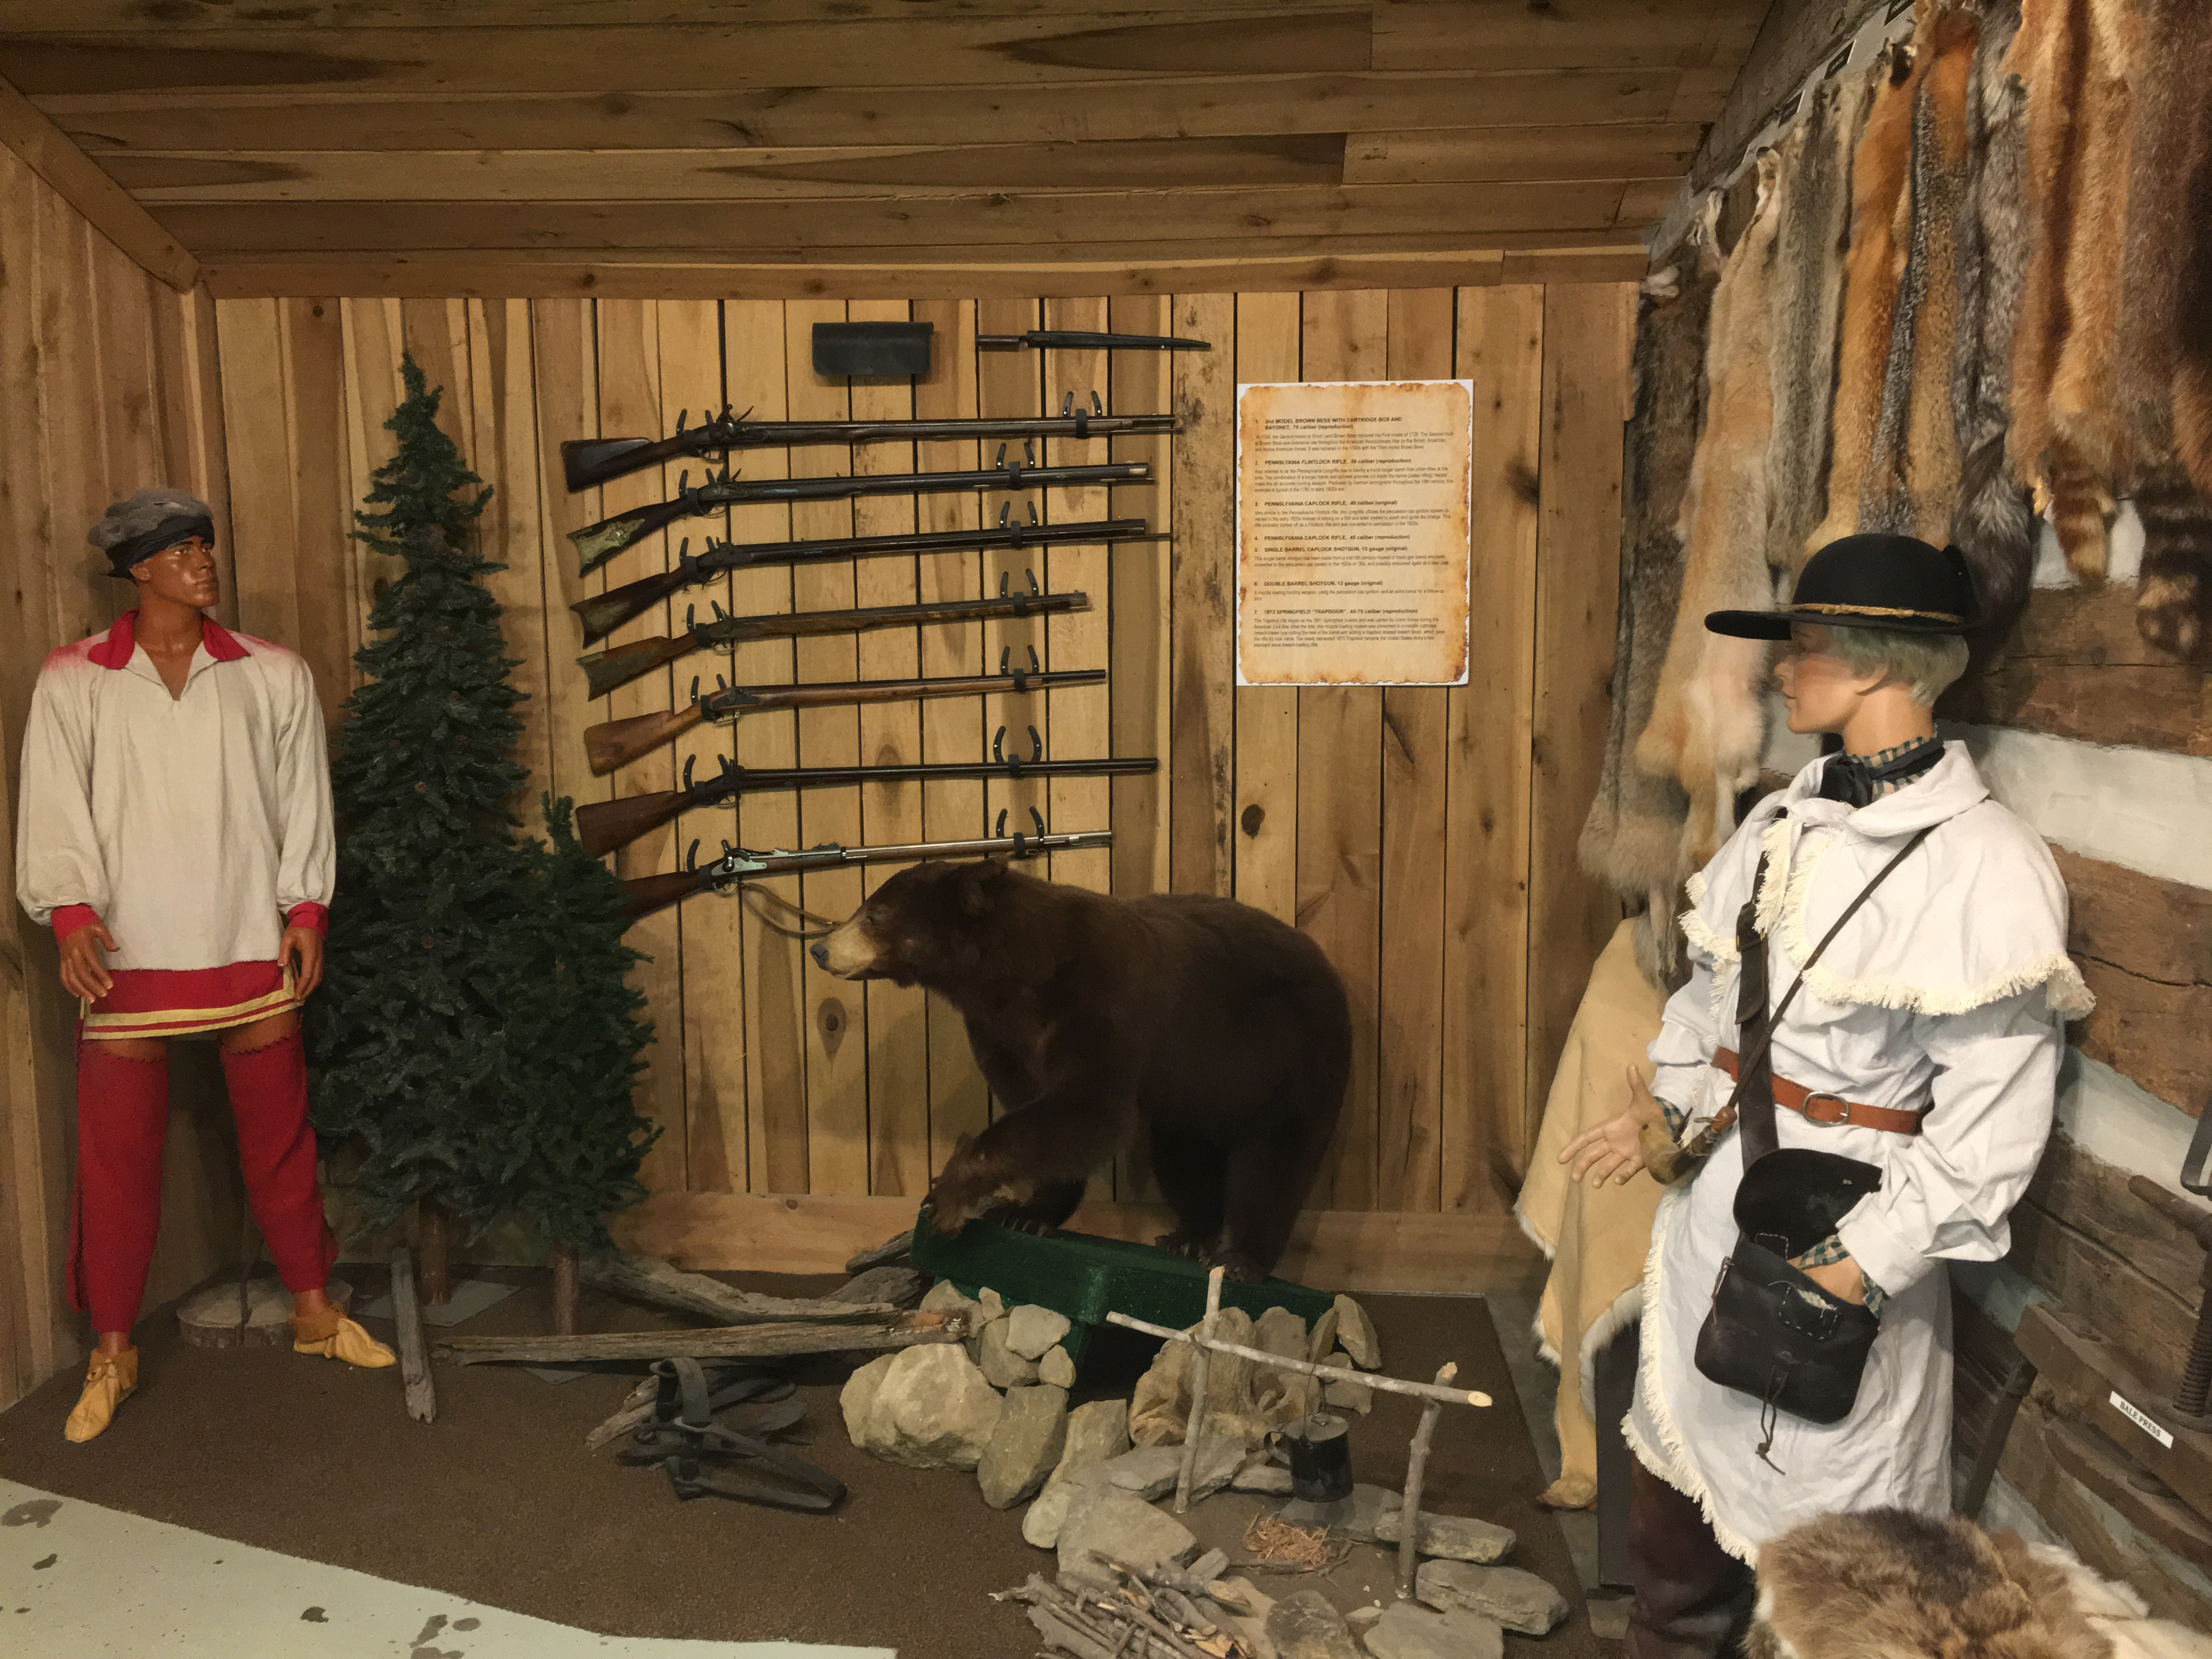 The fur trade of the 1600s and 1700s was the first major industry to develop in what is now the United States.